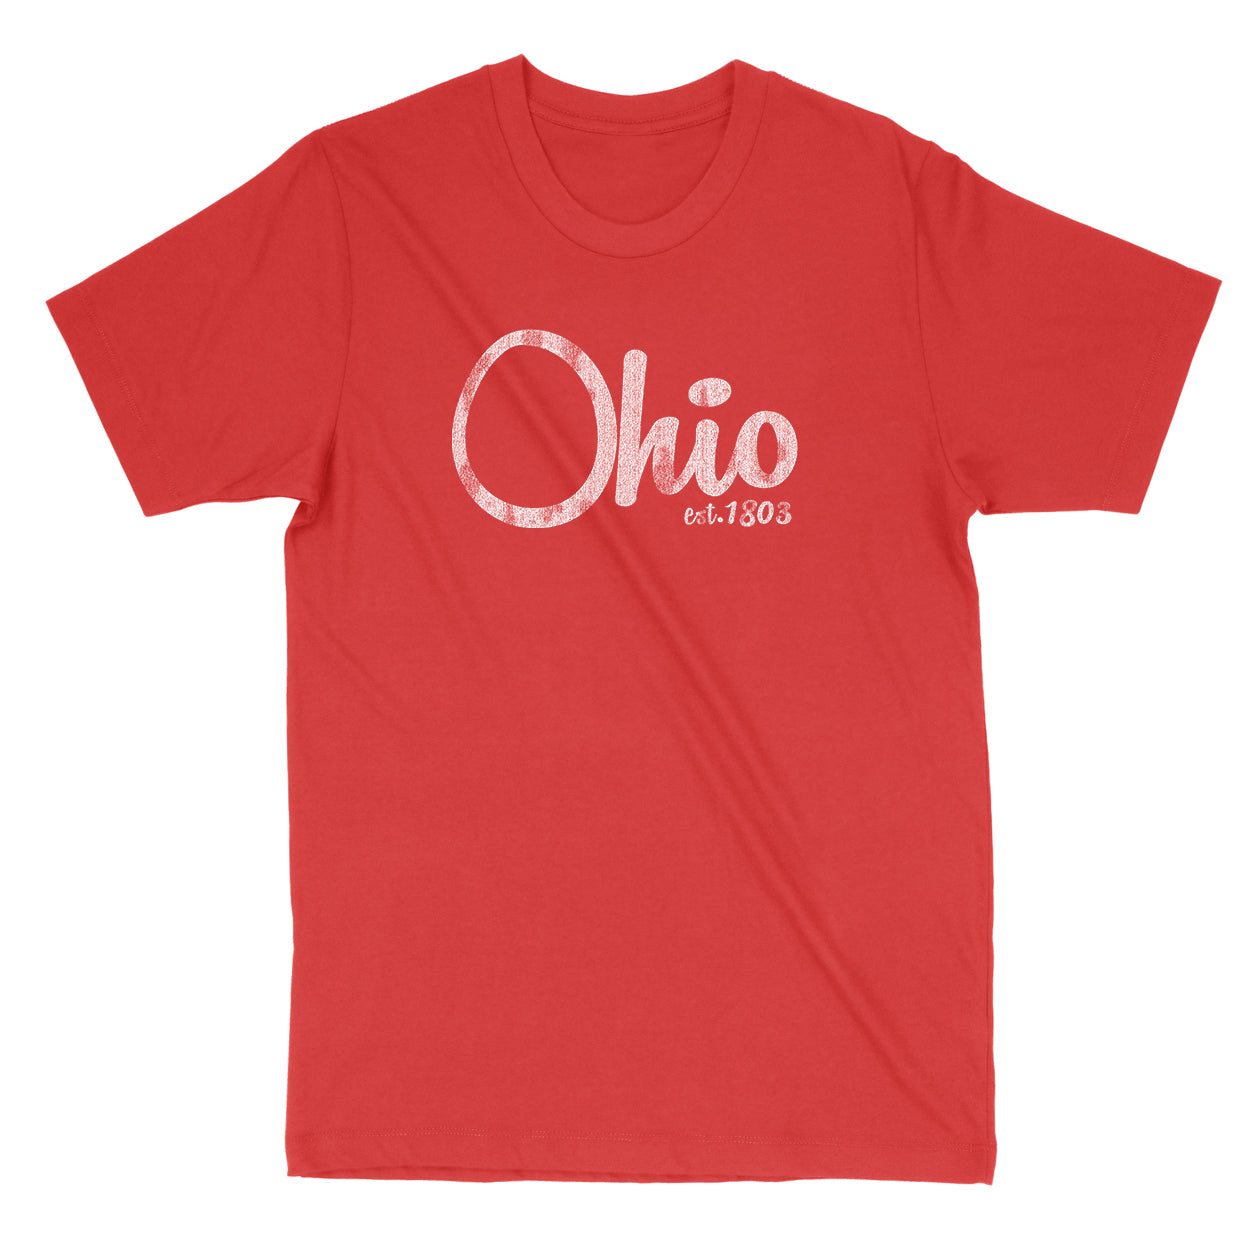 Ohio Est. 1803 Men's T-Shirt - Clothe Ohio - Soft Ohio Shirts